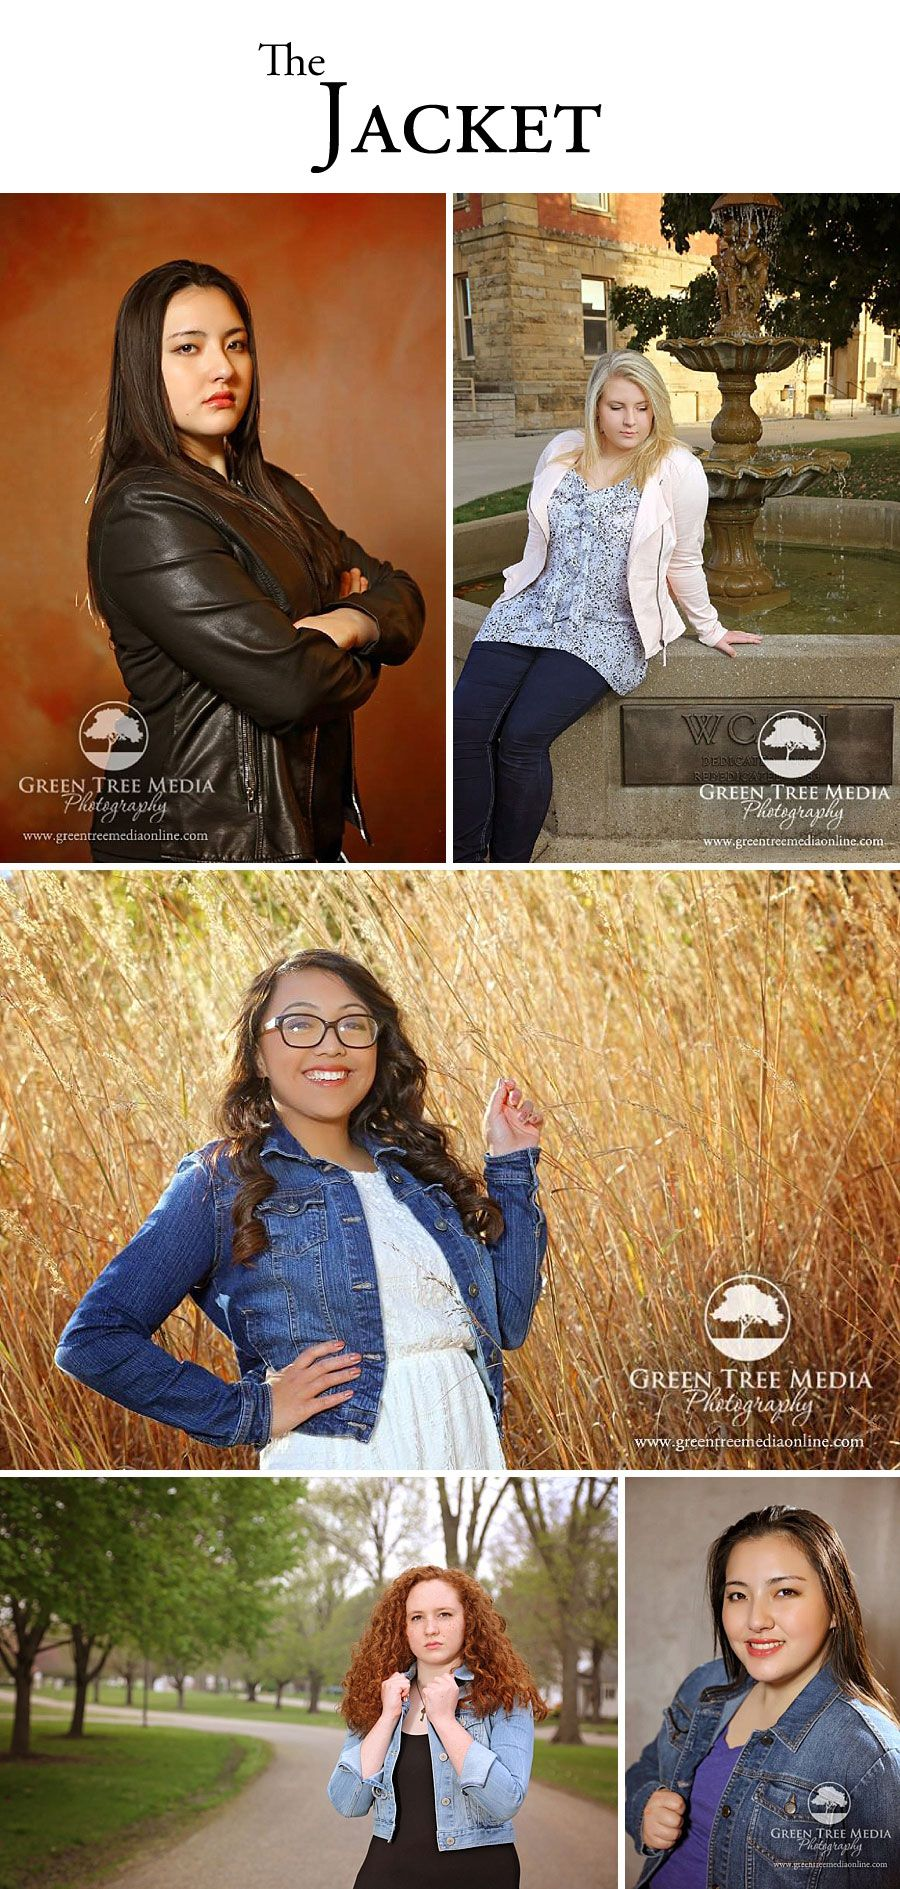 The Jacket is an awesome way to dress up or down your outfit for your senior portrait session